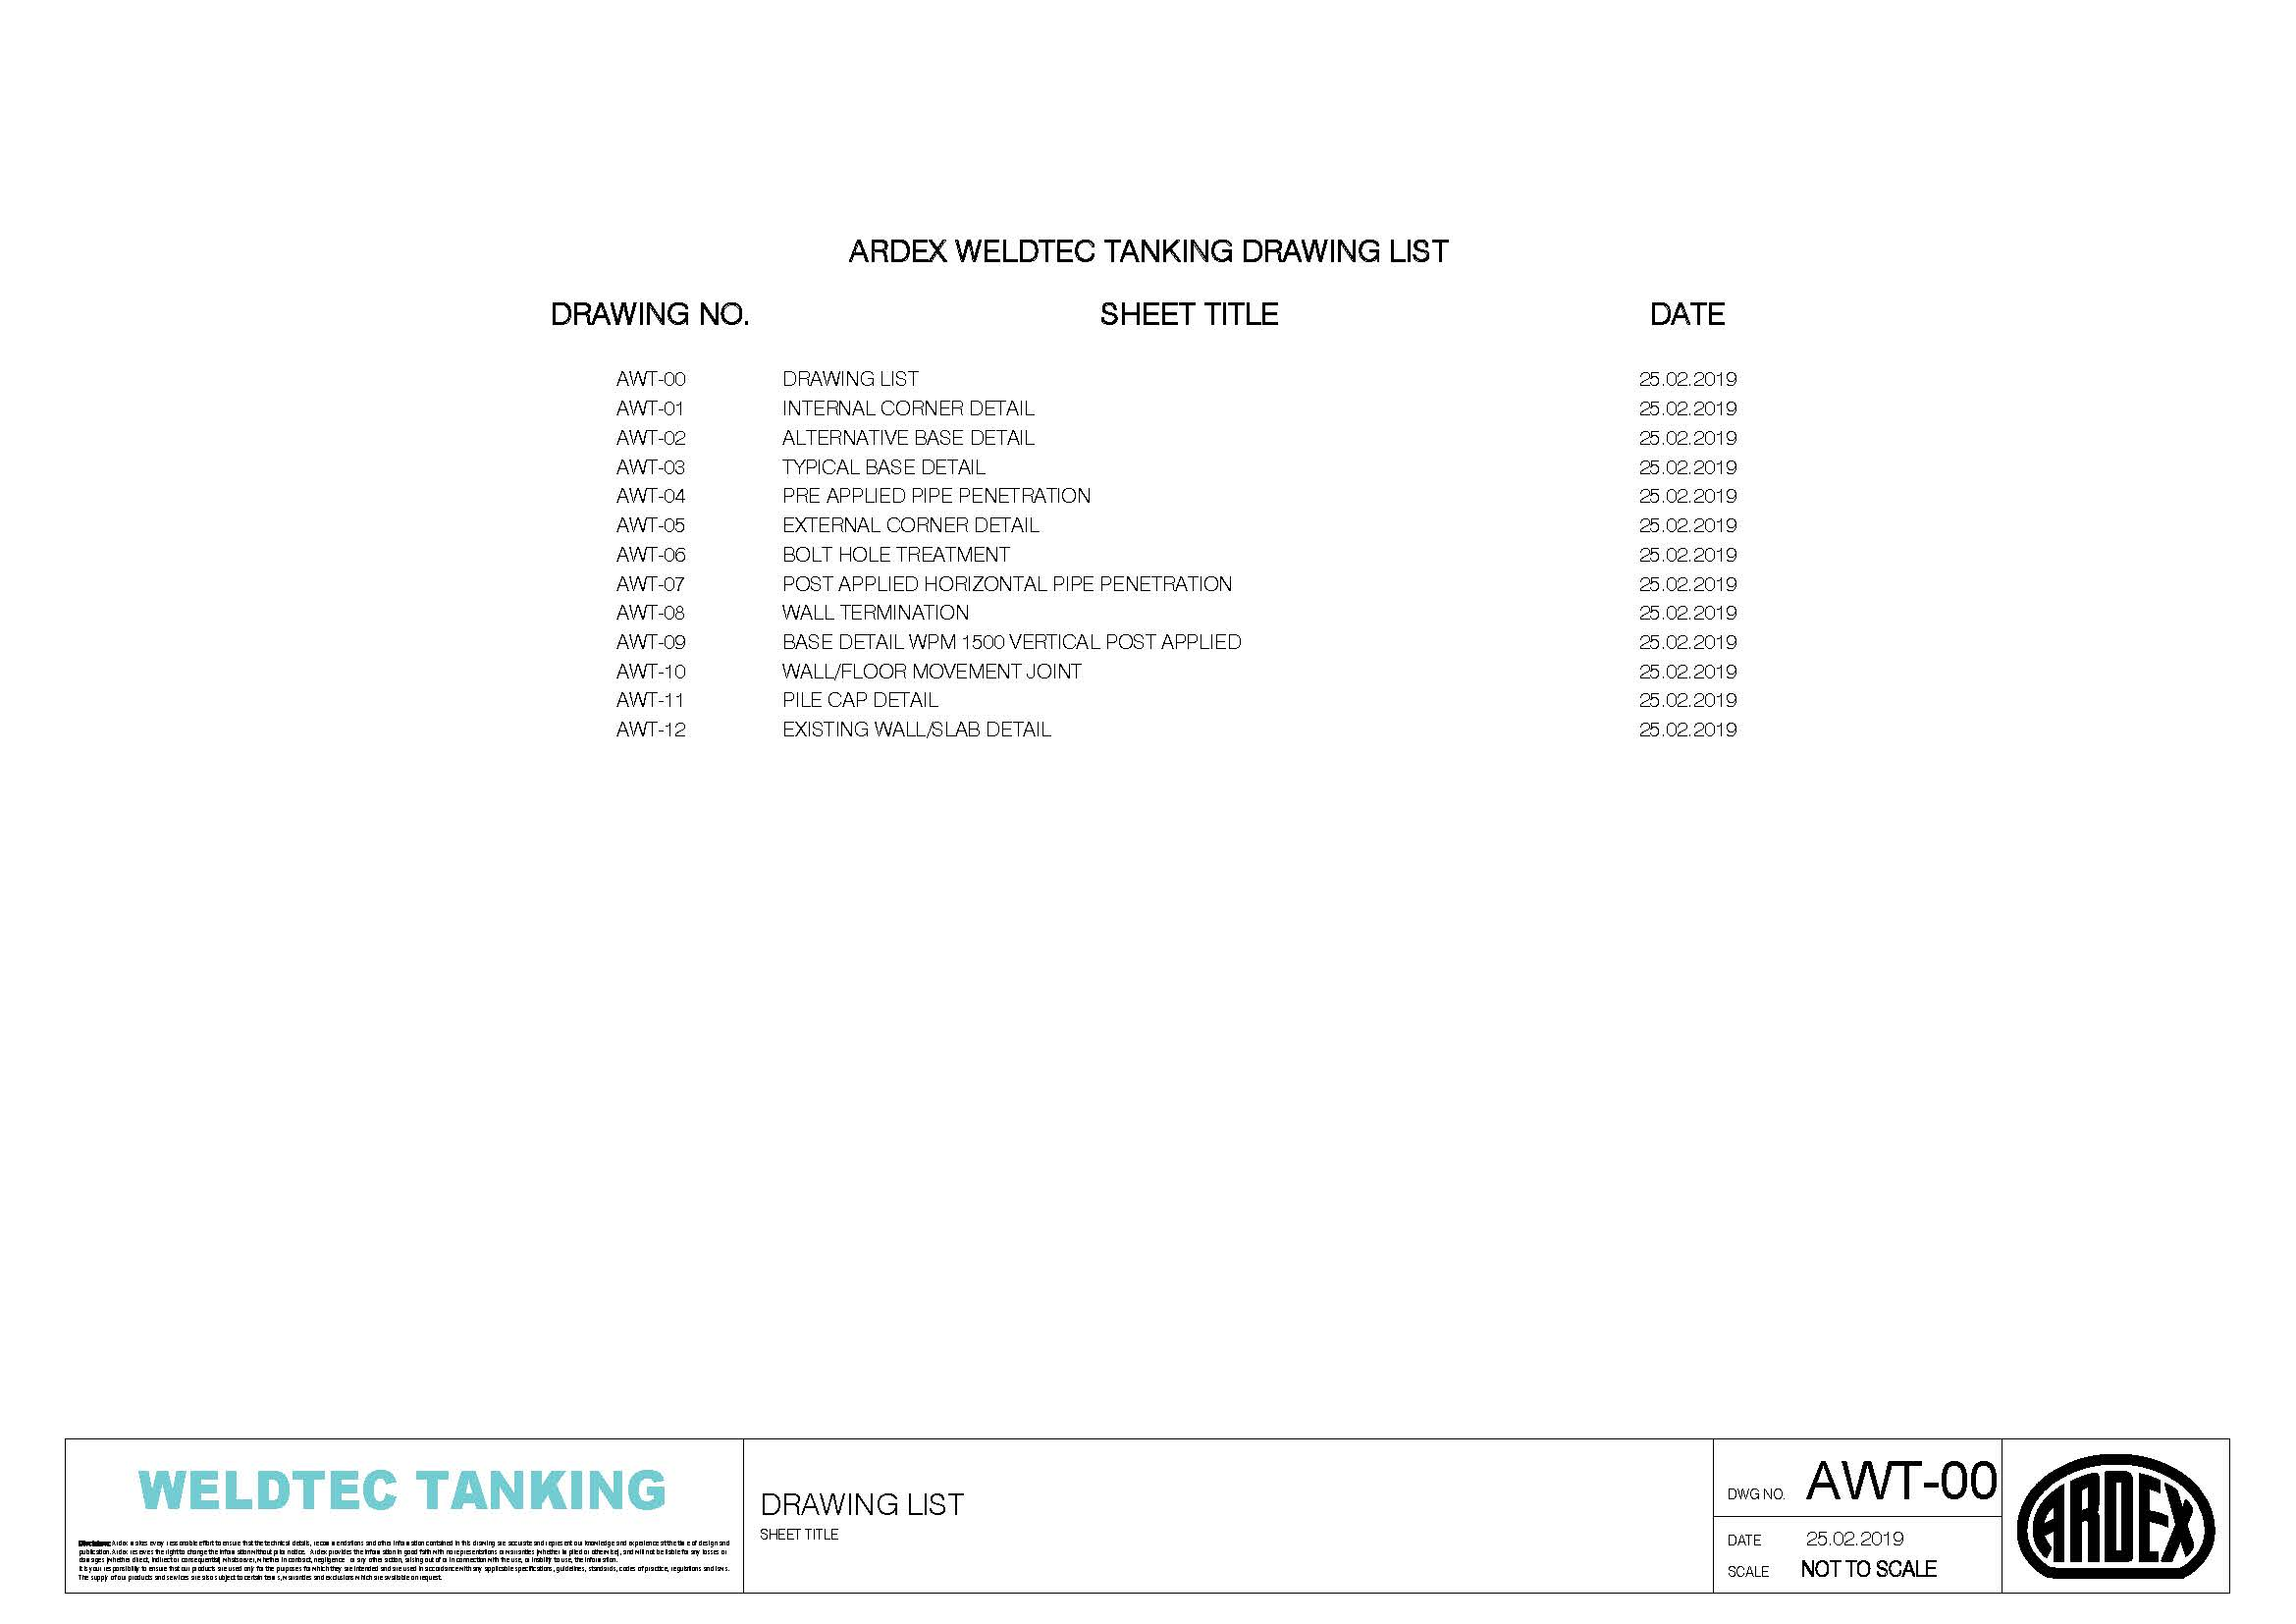 WeldTec Tanking - CAD Drawings - ARDEX New Zealand